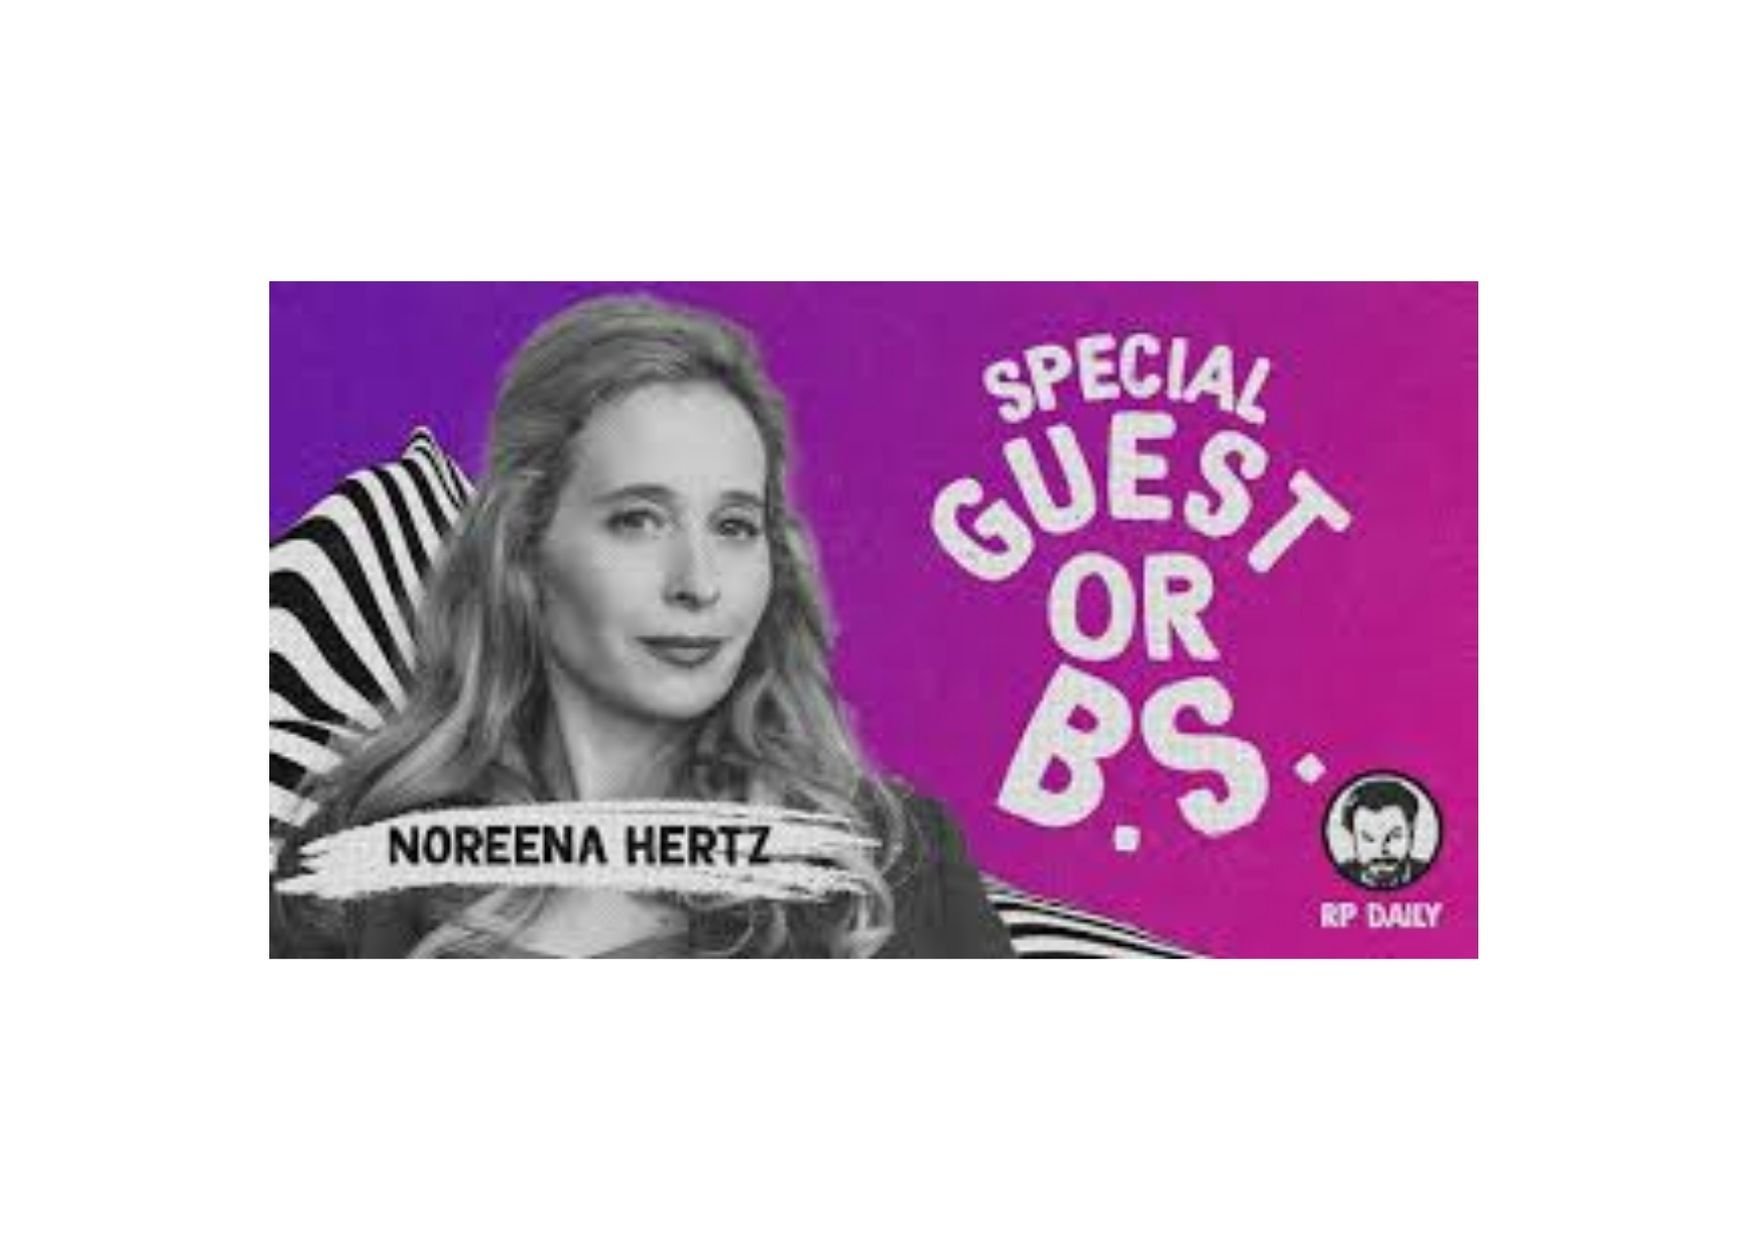 Noreena Hertz on the R.P. Daily Video Podcast